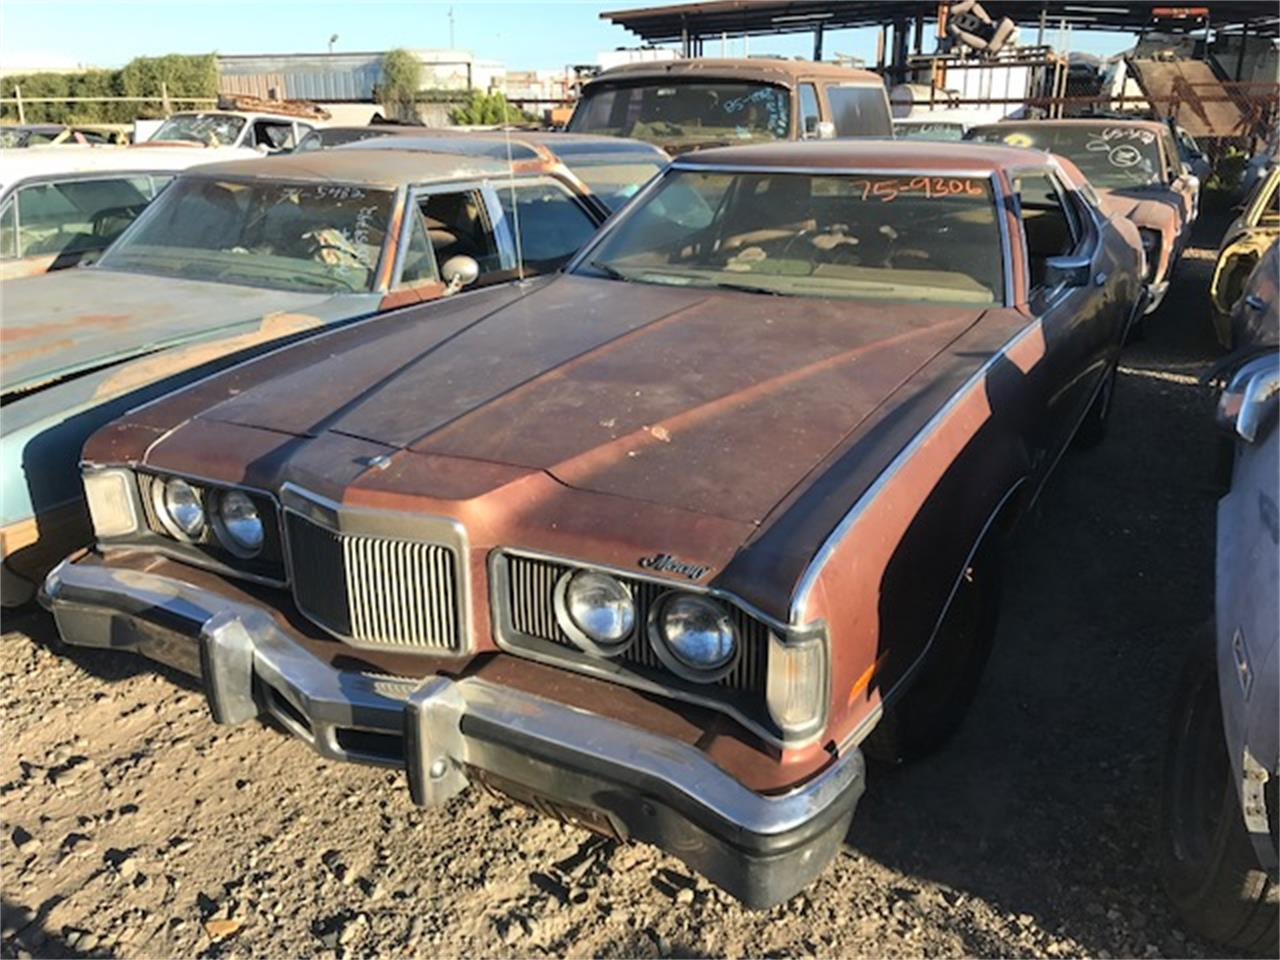 1975 Mercury Cougar XR7 for sale in Phoenix, AZ